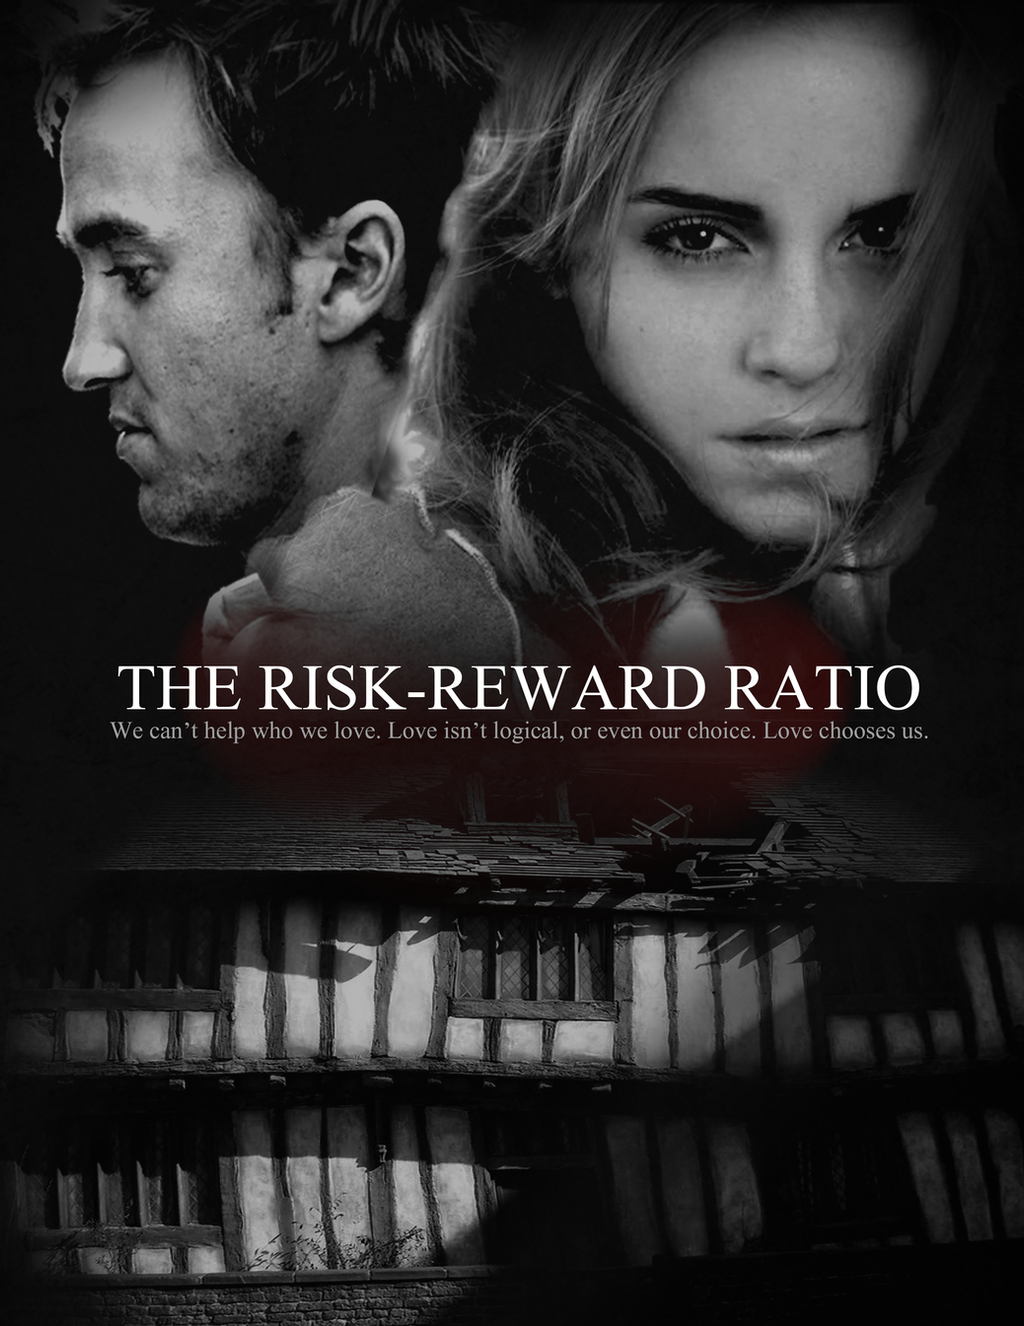 Wattpad Book Cover Ratio : The risk reward ratio fanfiction book cover by